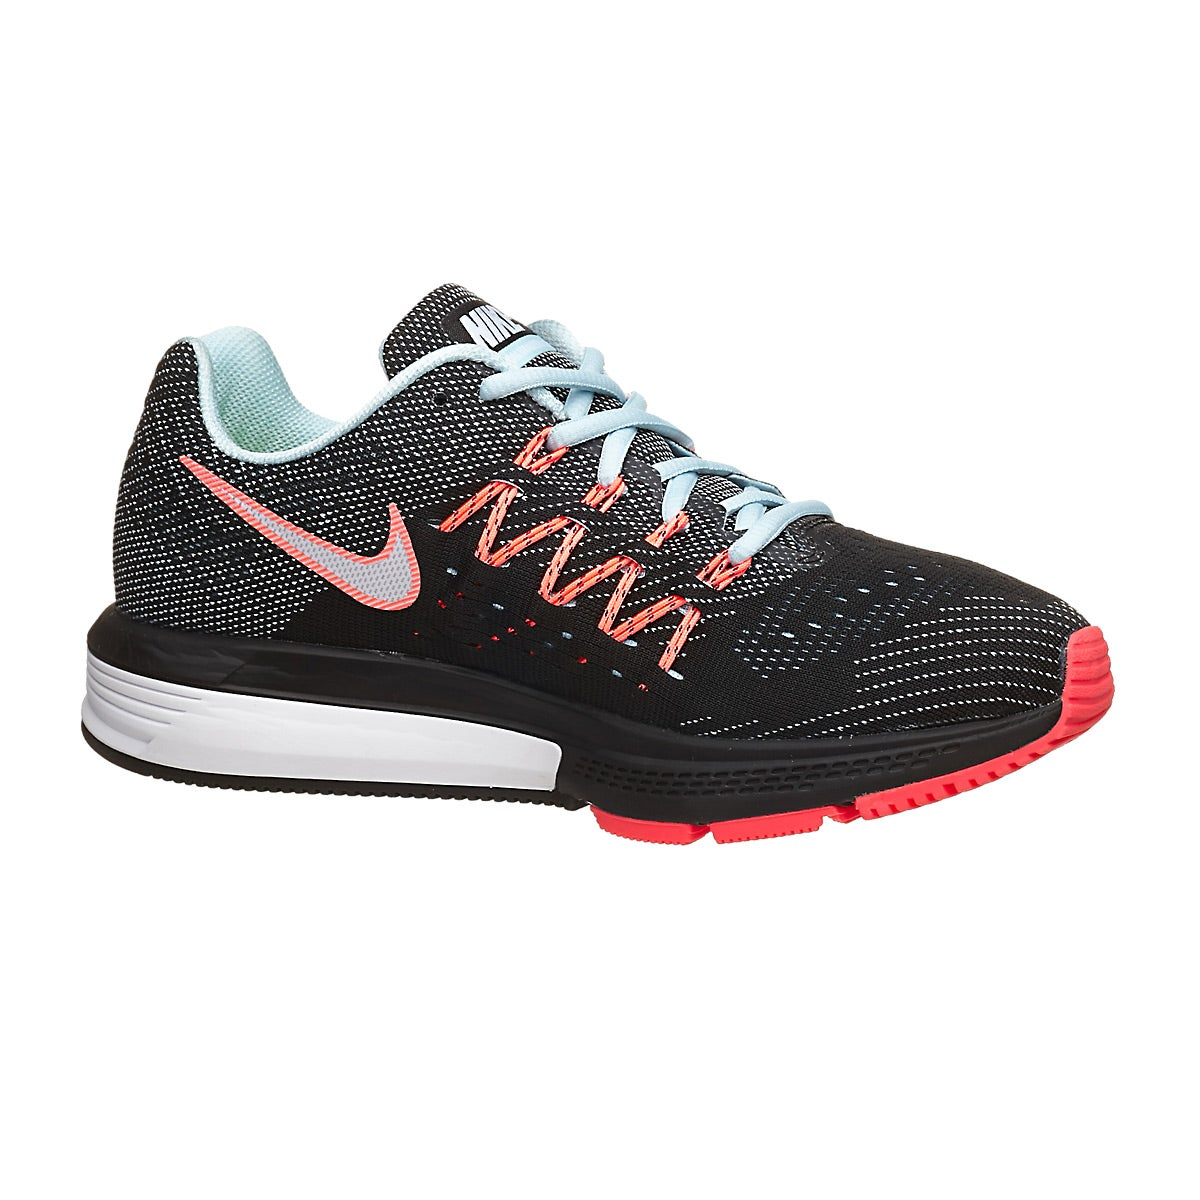 e785191a8331 ... mens breathable running shoes sports sneakers 2be16 370fe  greece nike  zoom vomero 10 womens shoes ice black lava 360 view running c901c d1d2d